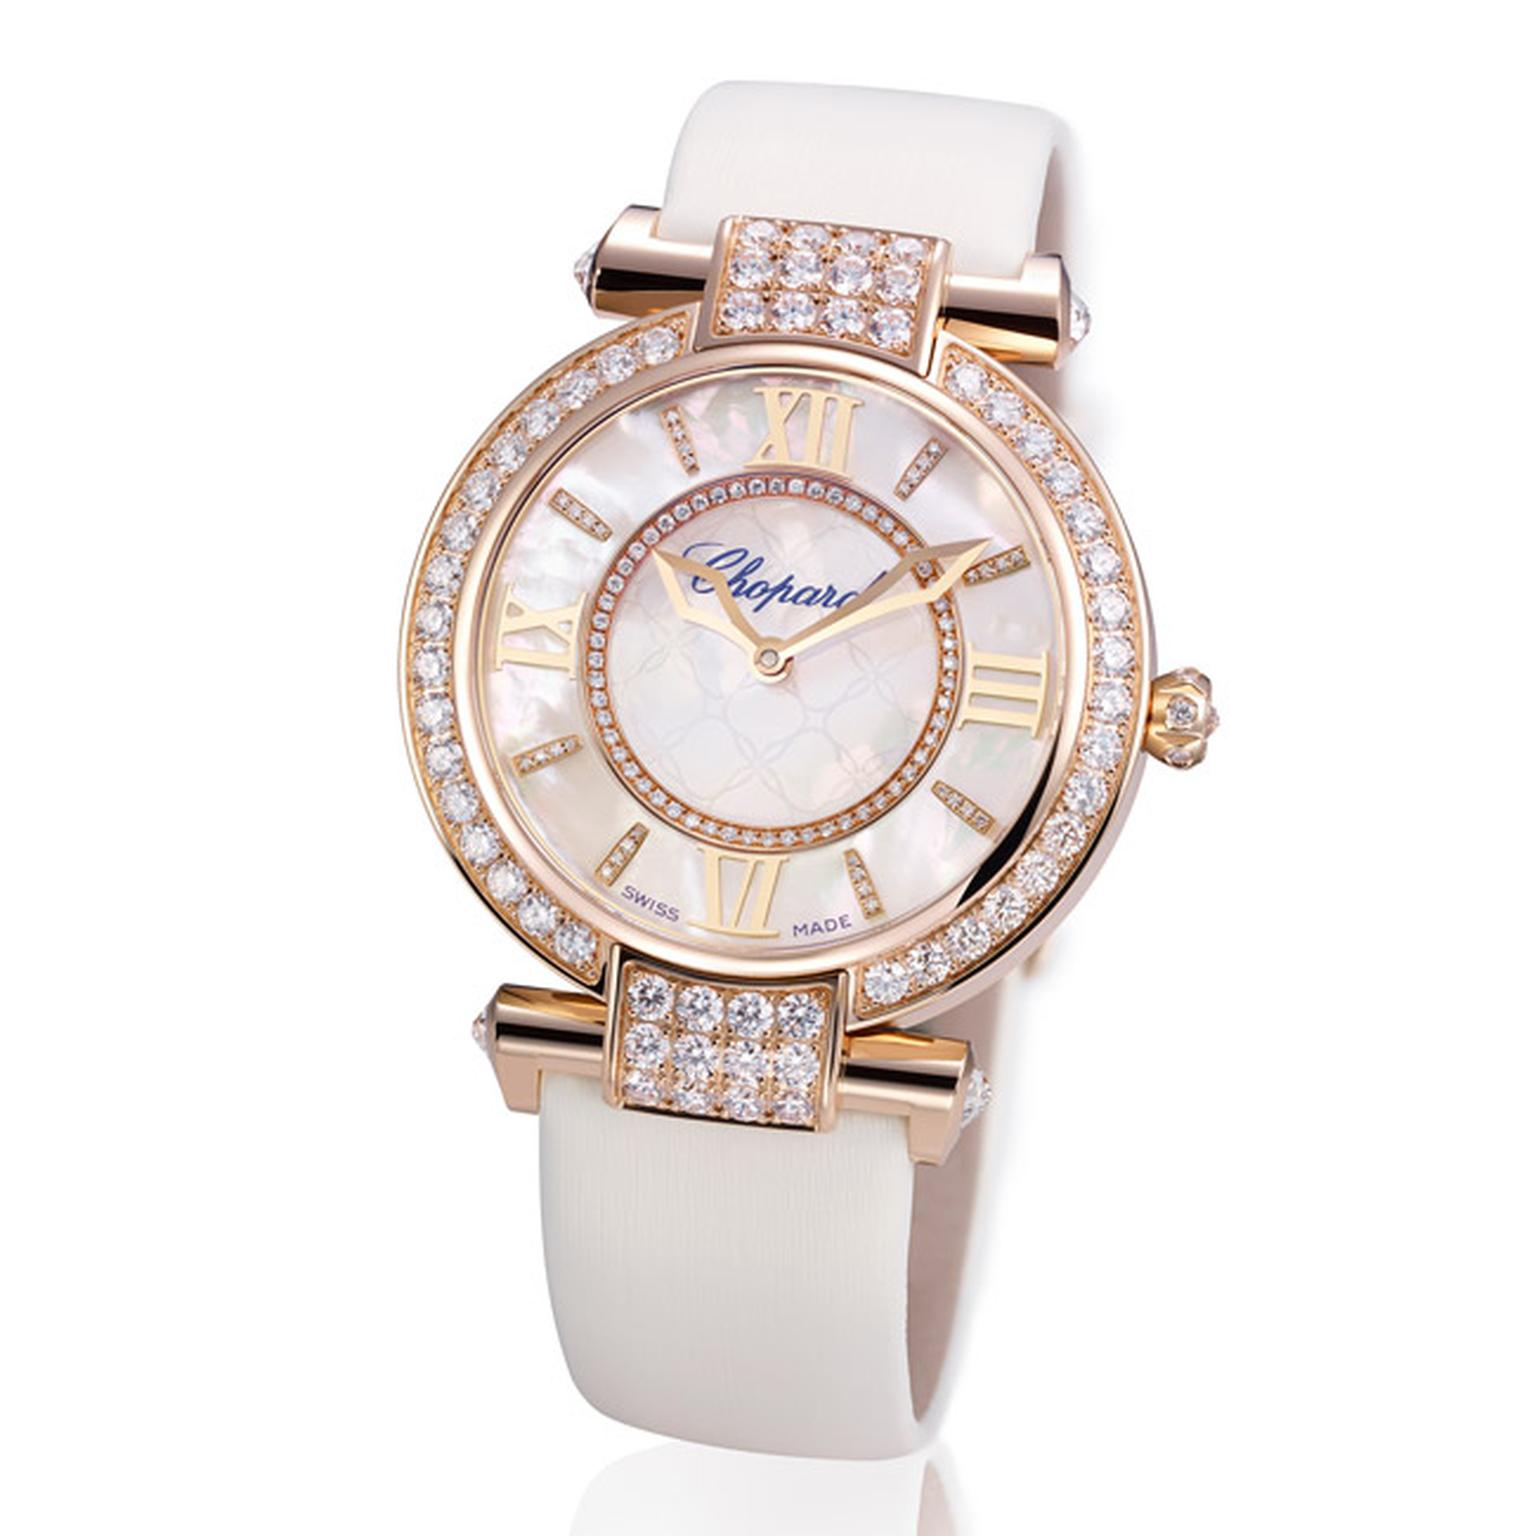 Chopard-Imperiale-White-Watch-Main